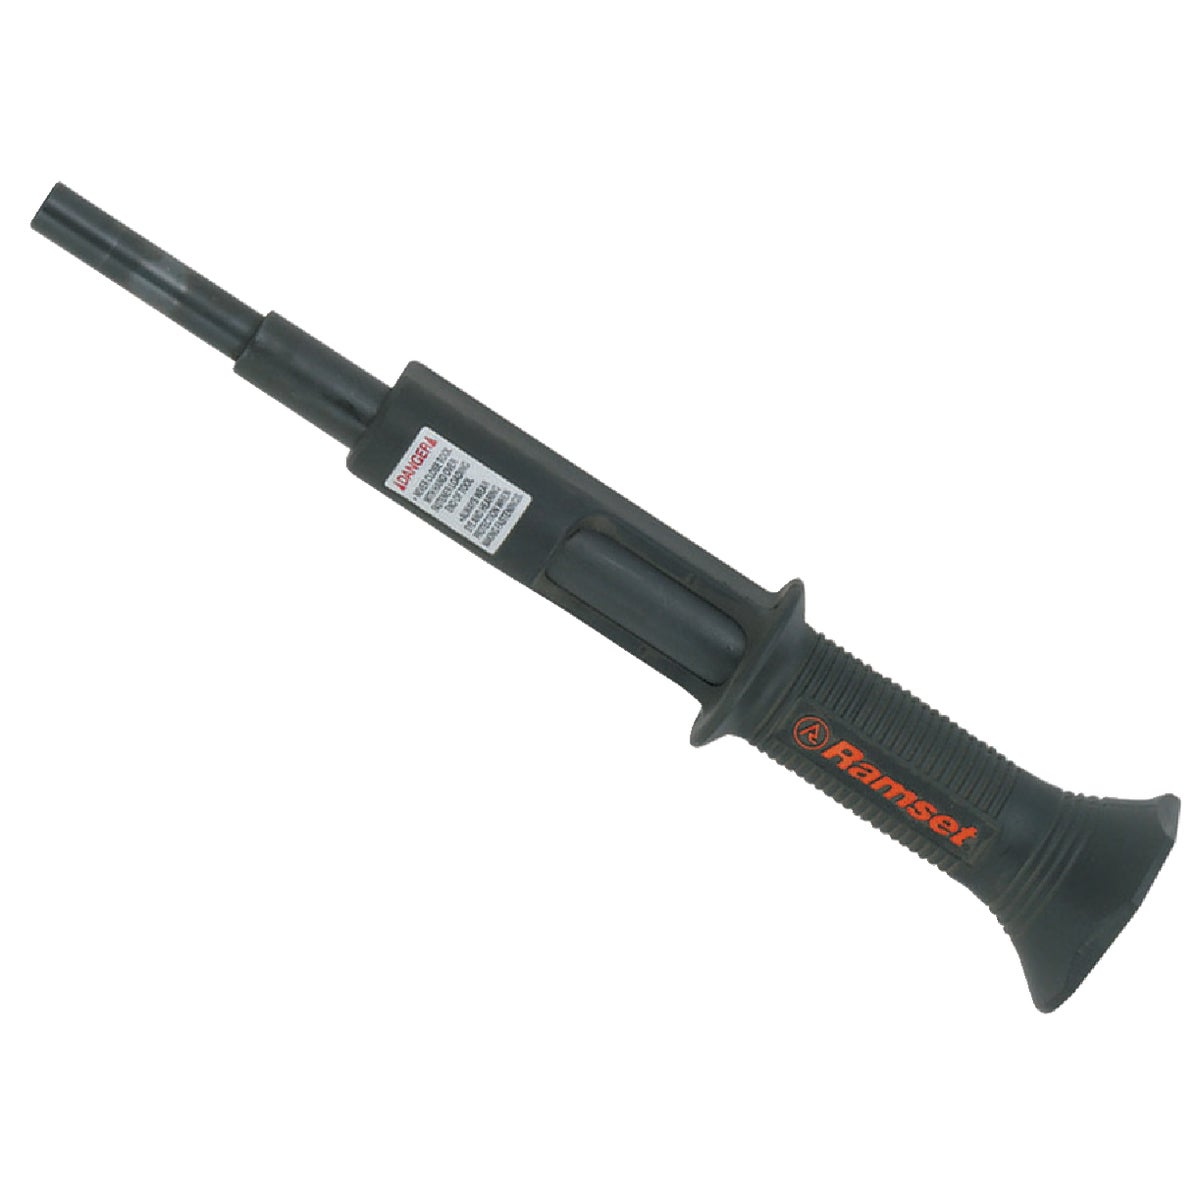 .22 POWER HAMMER - 00022 by Itw Brands